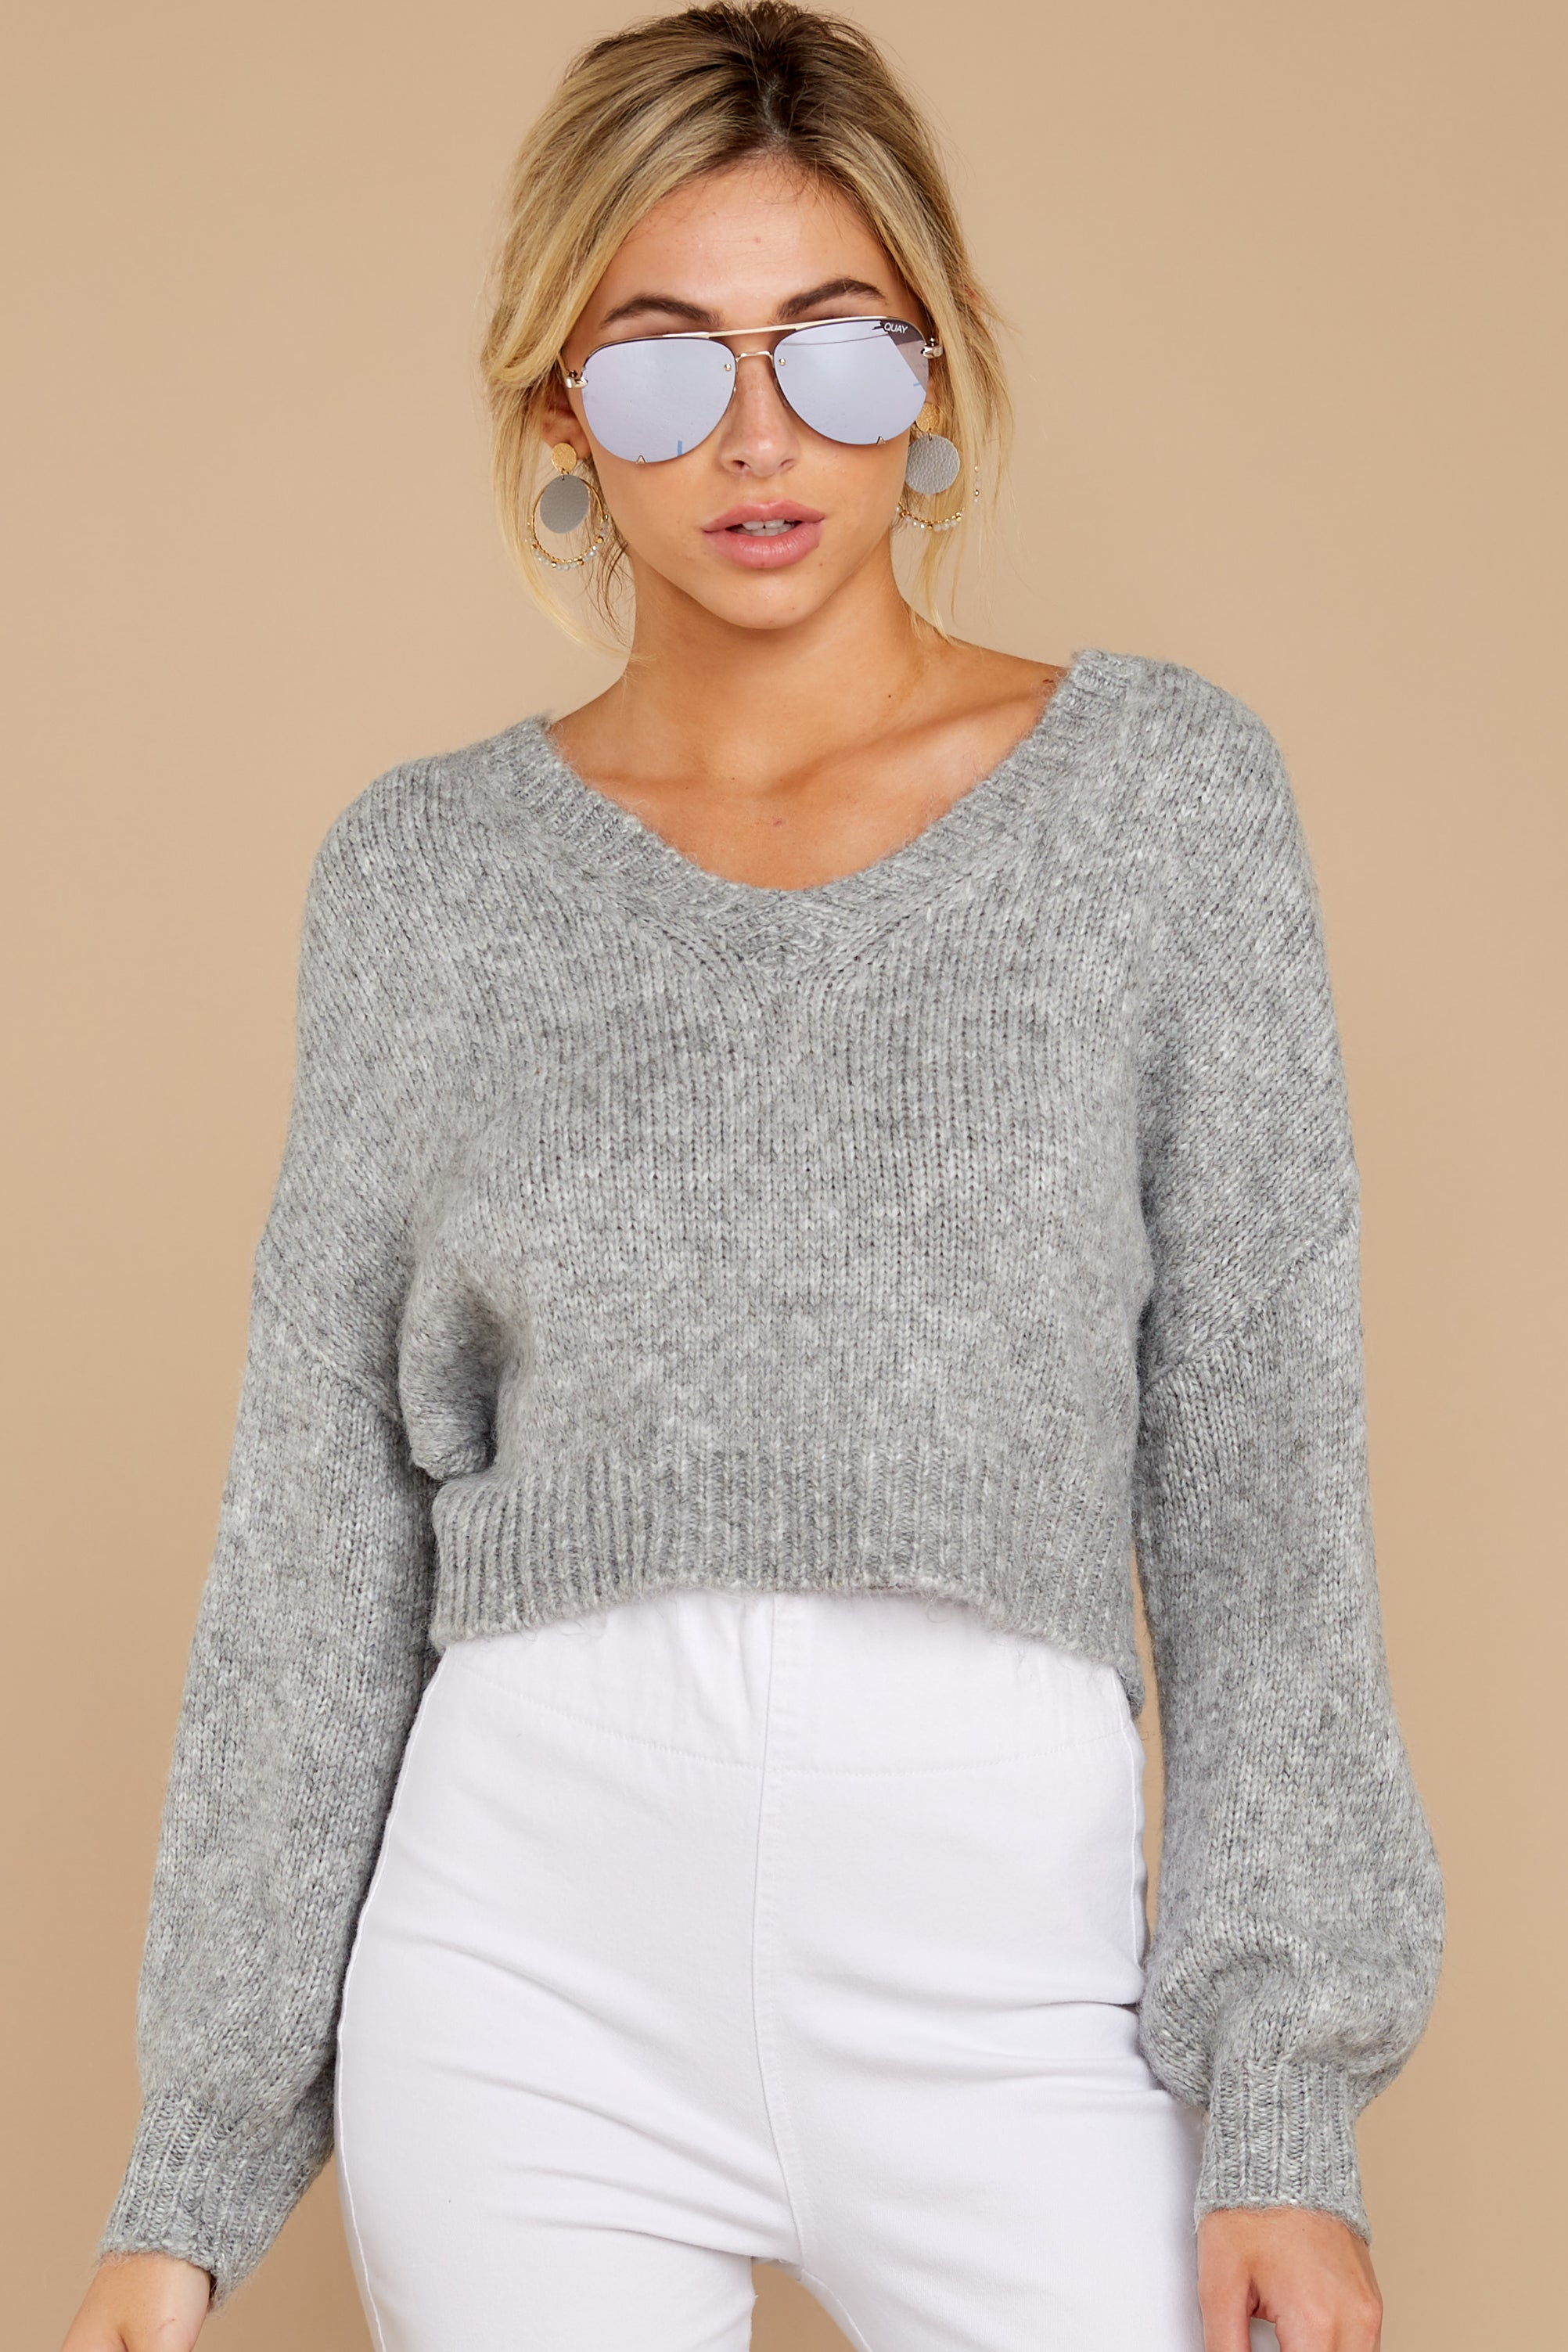 6 It'll Be Me Light Grey Crop Sweater at reddressboutique.com